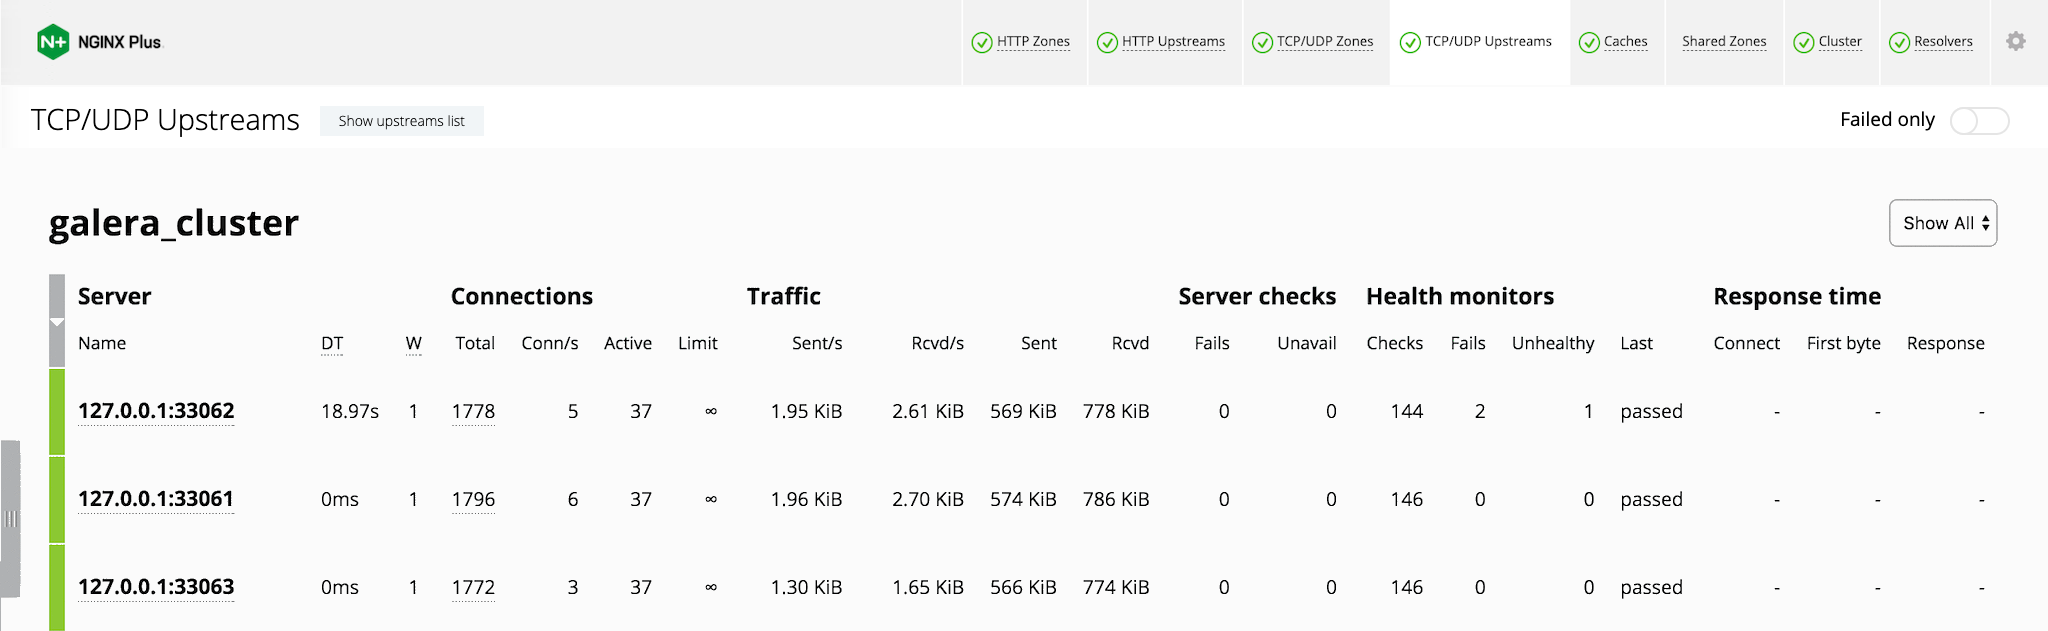 The NGINX Plus live activity monitoring dashboard enables you to track server health when load balancing MySQL nodes